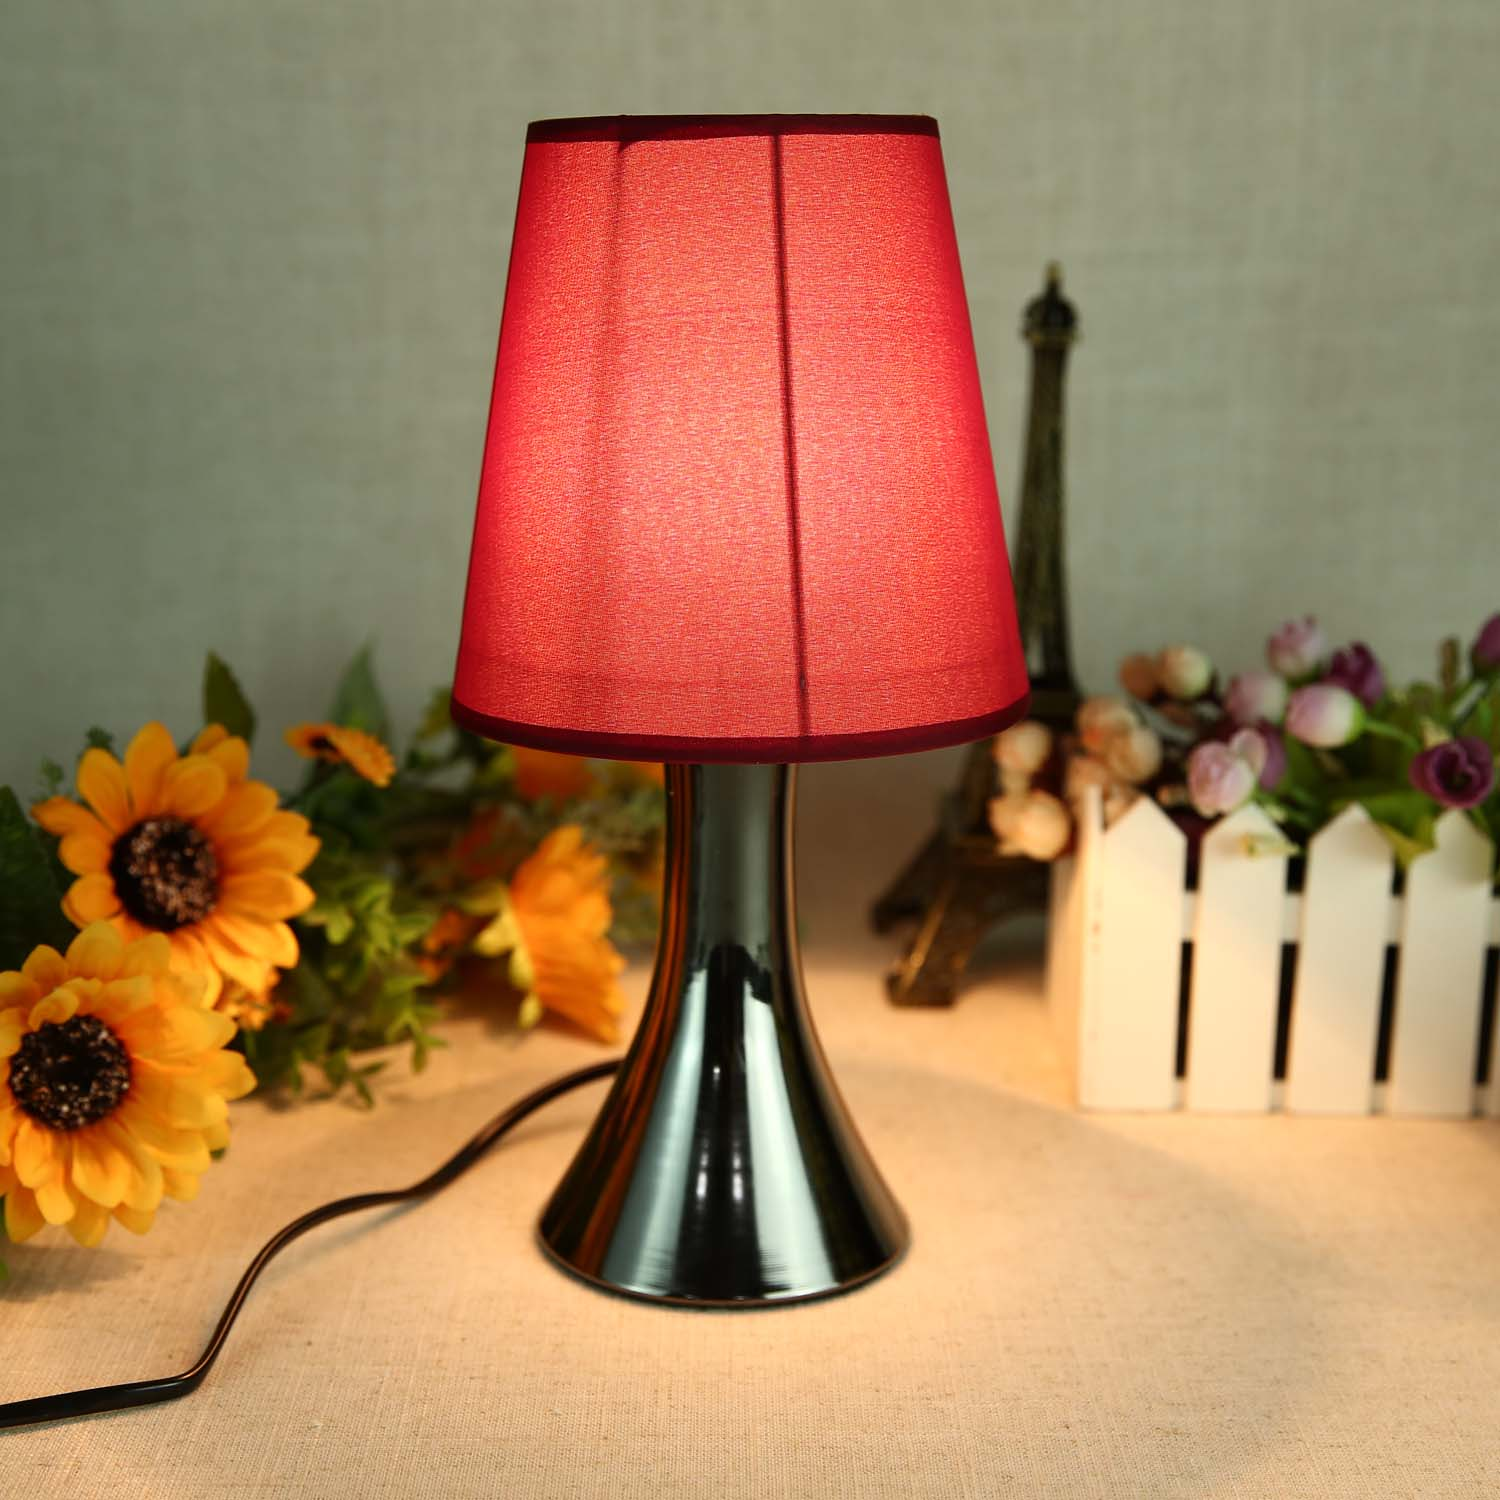 77387311 black chrome red touch dimmer bedside table lights lamps bedroom 40w ebay - Bedside lamps with dimmer ...